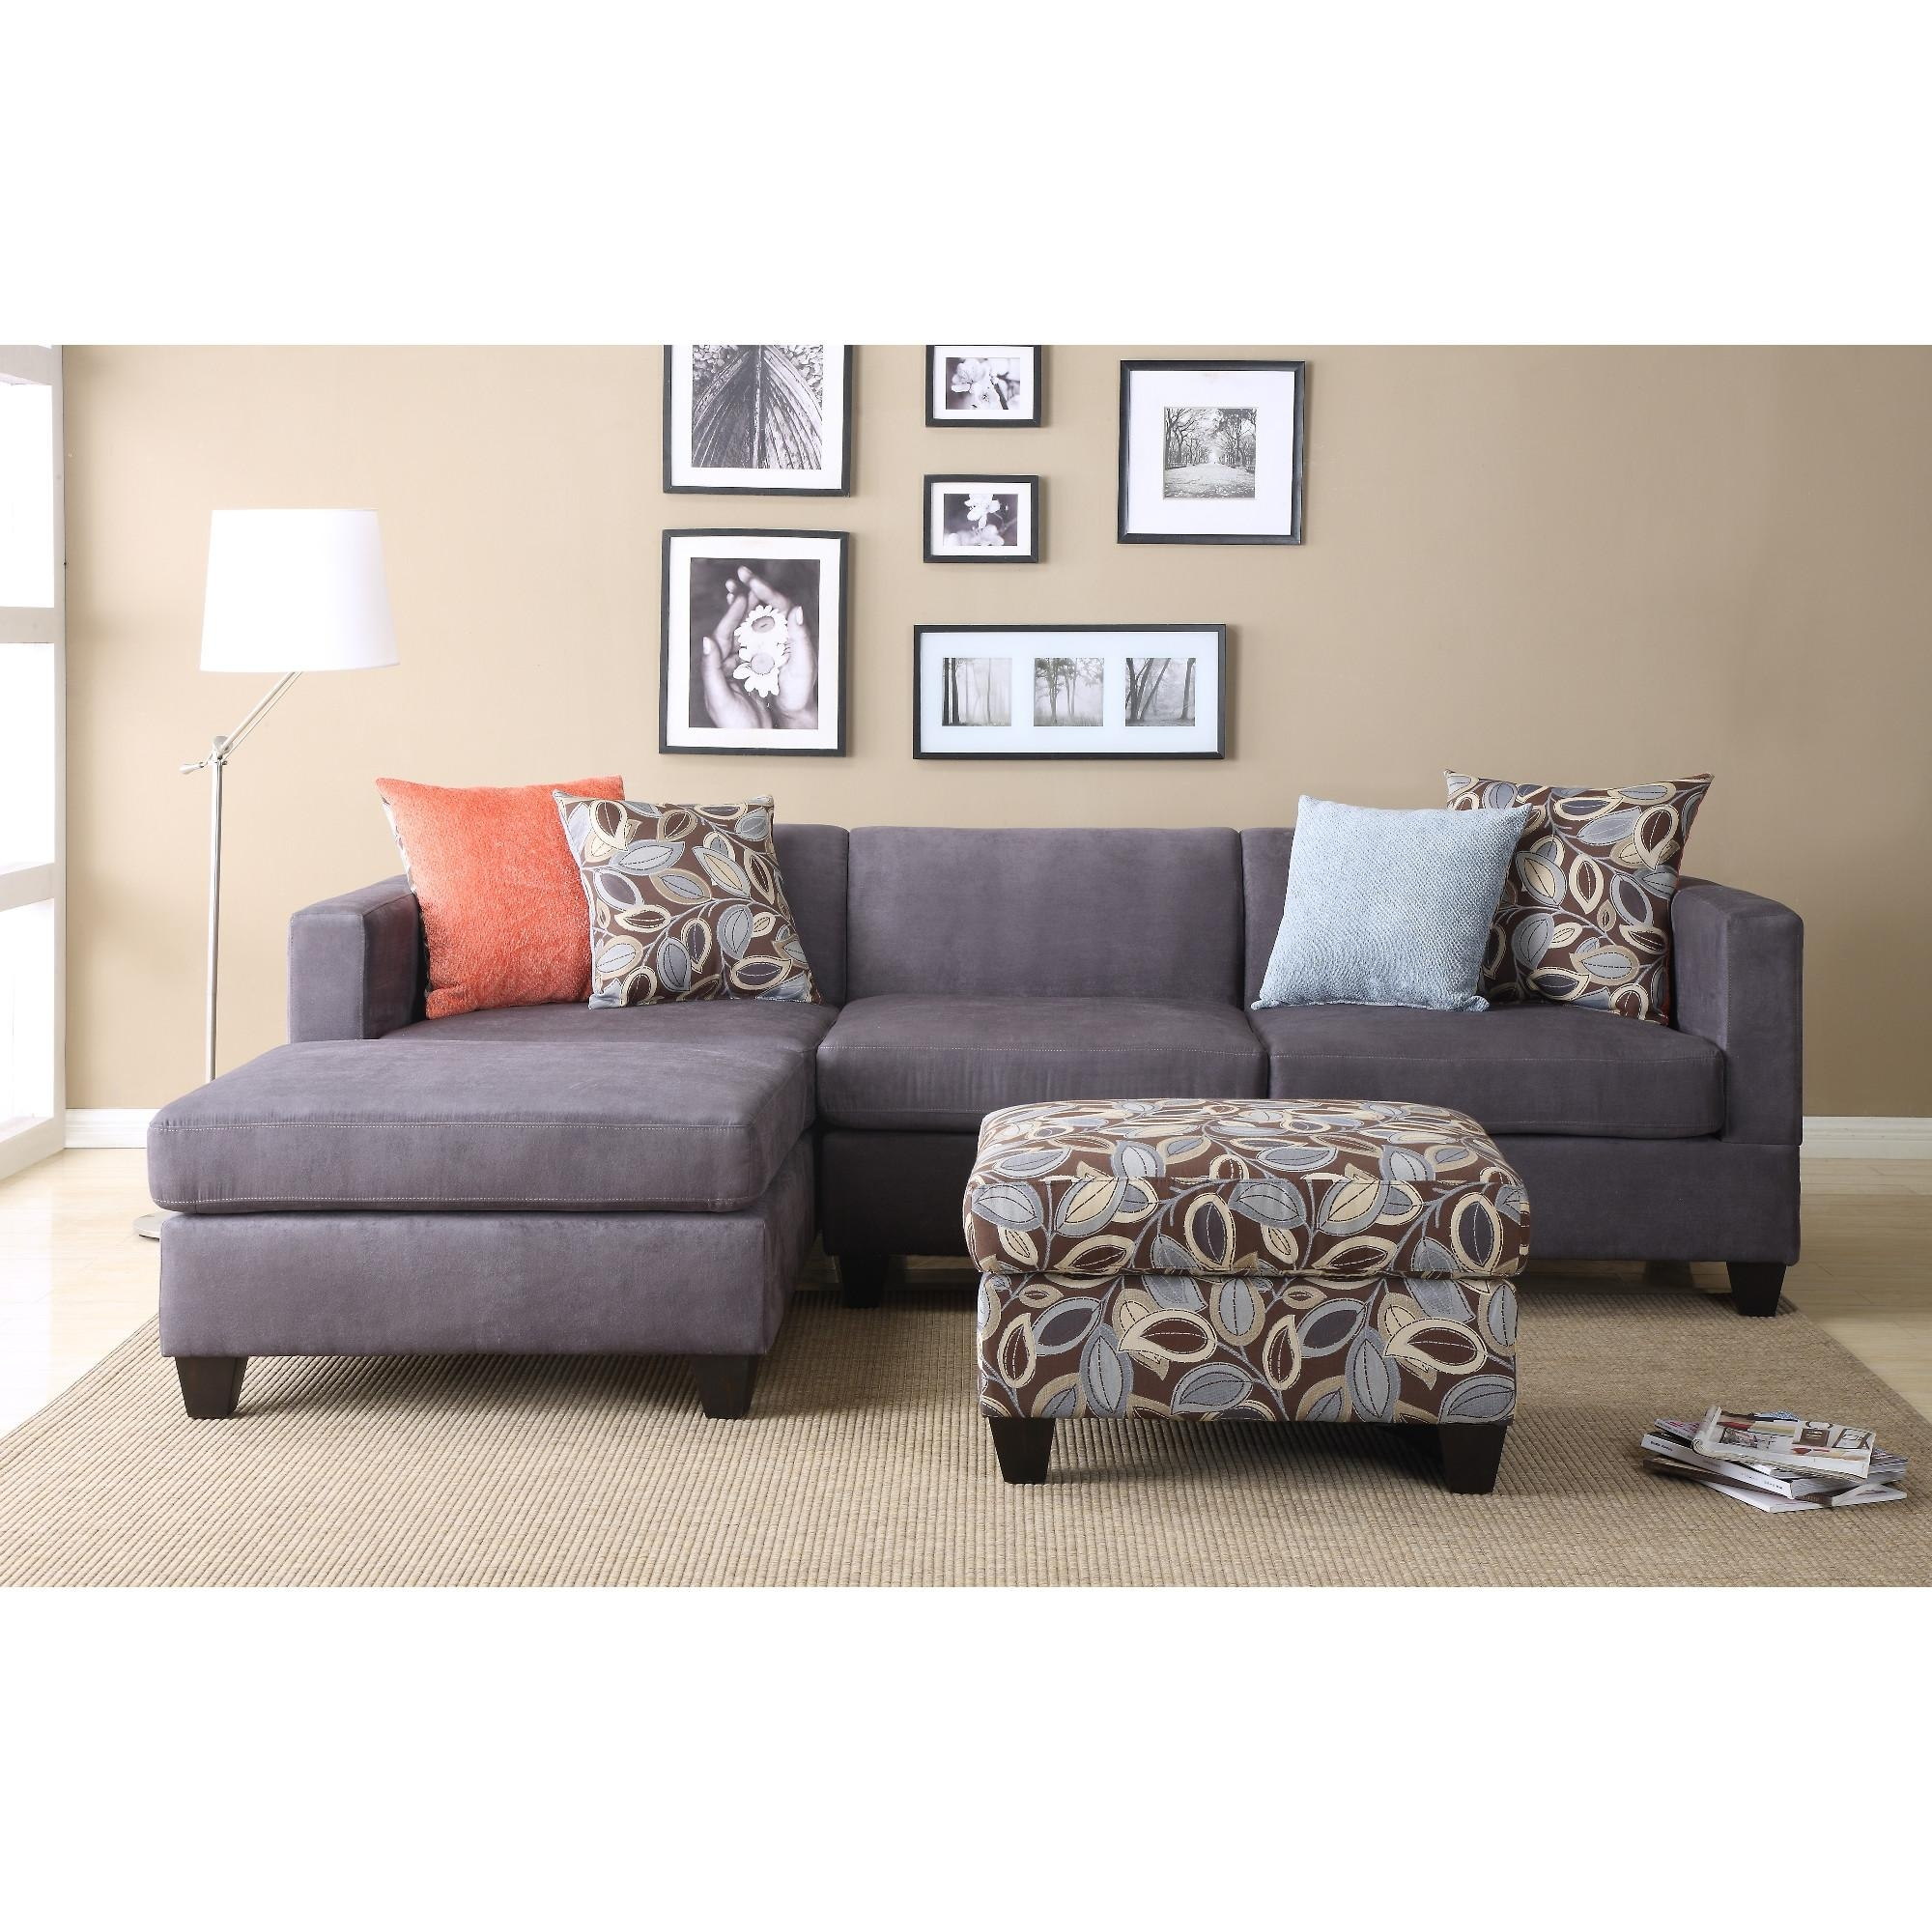 Furniture & Sofa: Best Sectional For Small Spaces | Small Space Throughout Mini Sectional Sofas (Image 10 of 20)